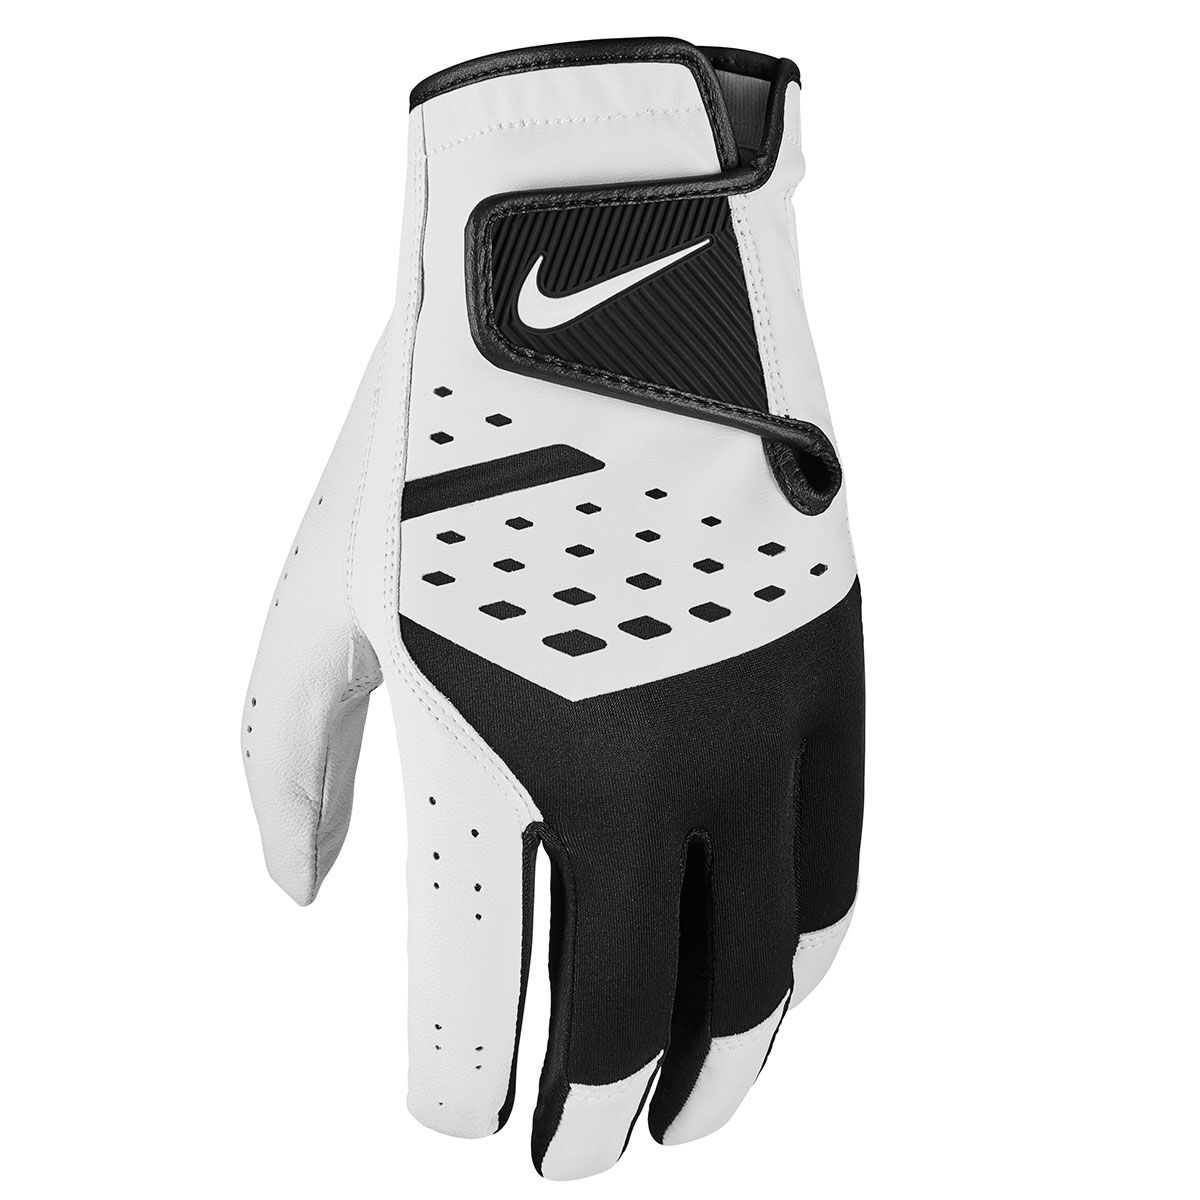 Nike Golf Mens White And Black Lightweight Tech Extreme VII Left Hand Golf Glove, Size: S   American Golf